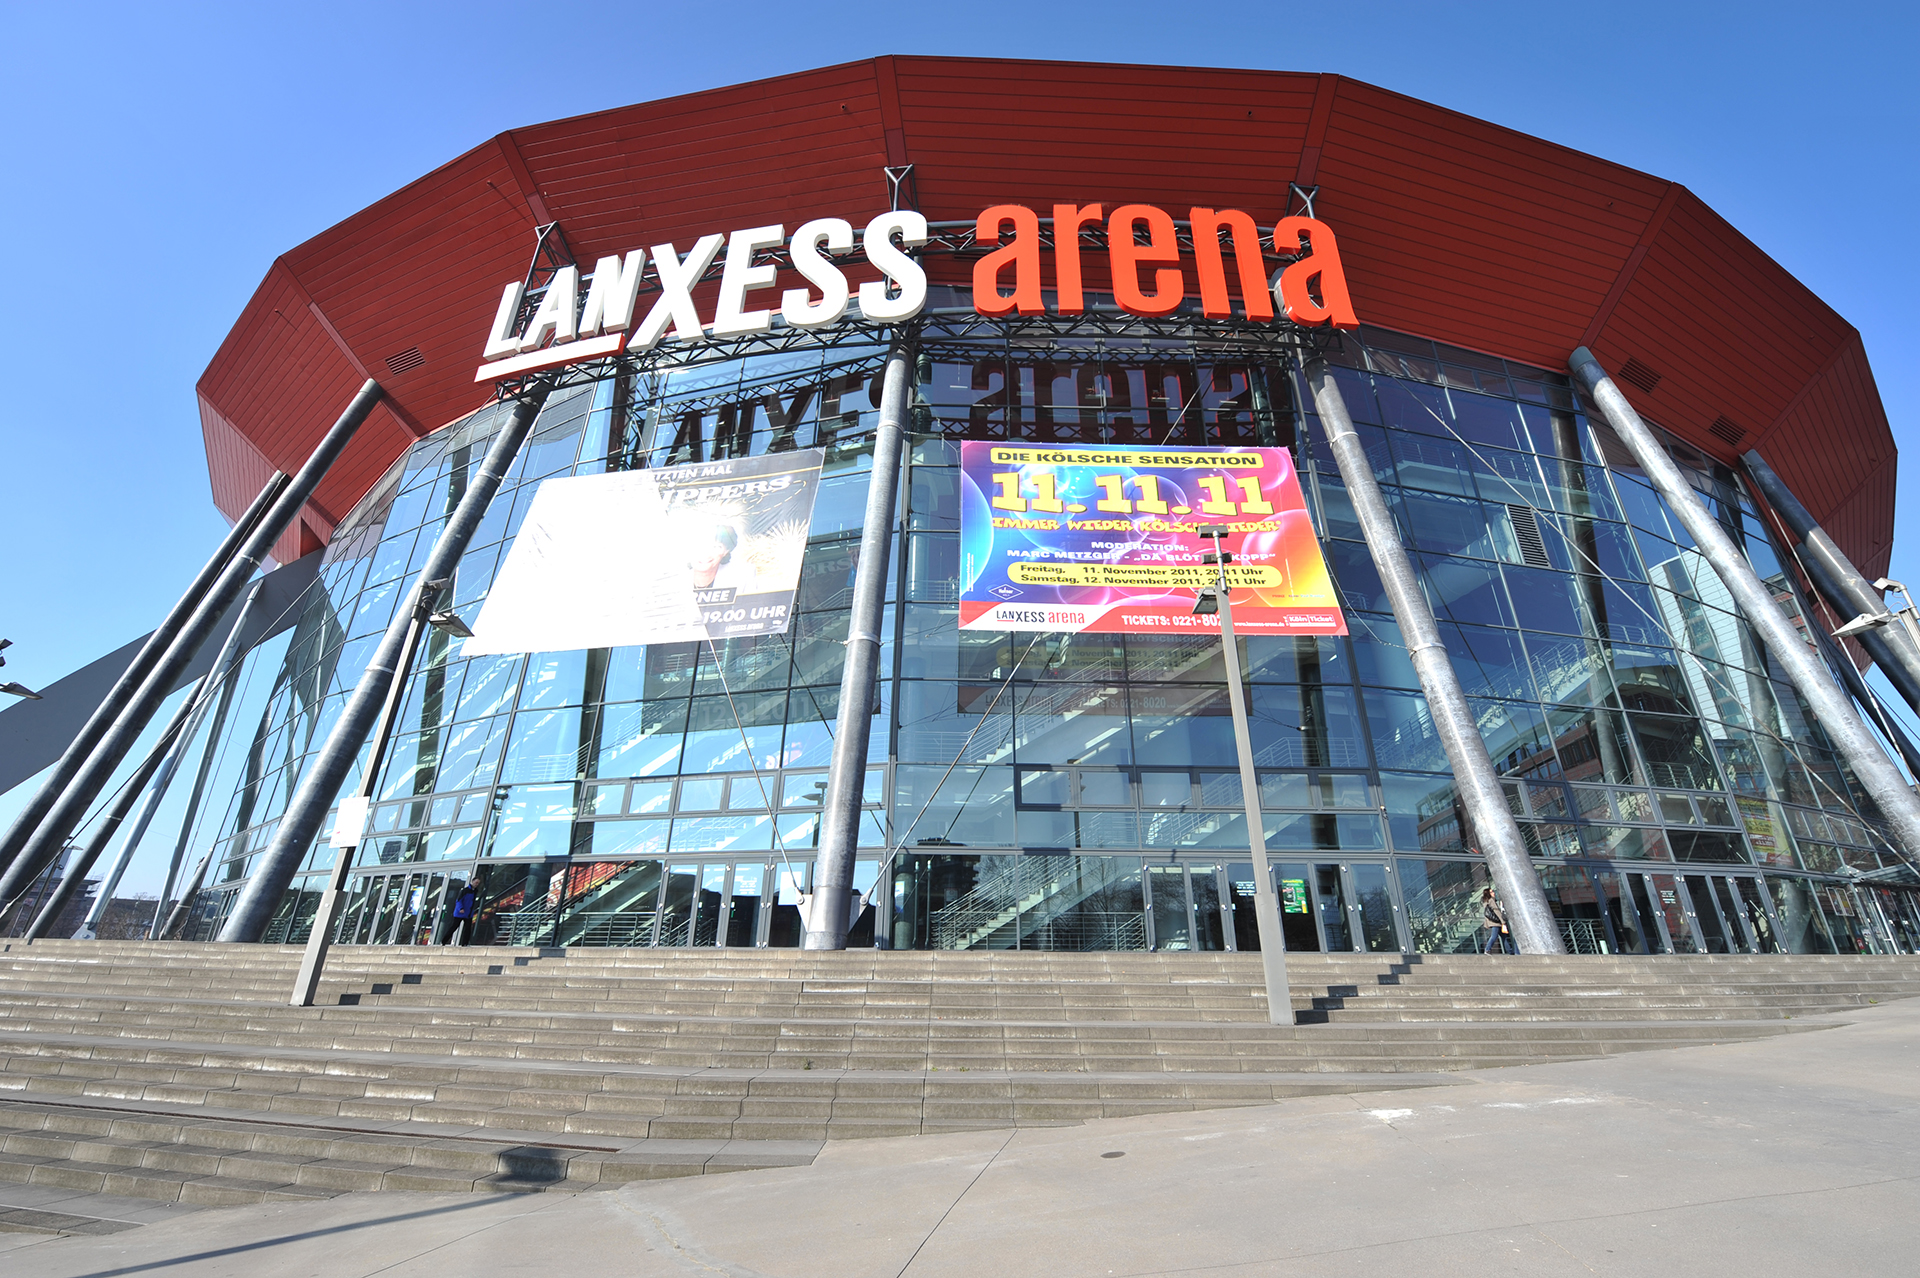 Lanxess Arena - 2min away